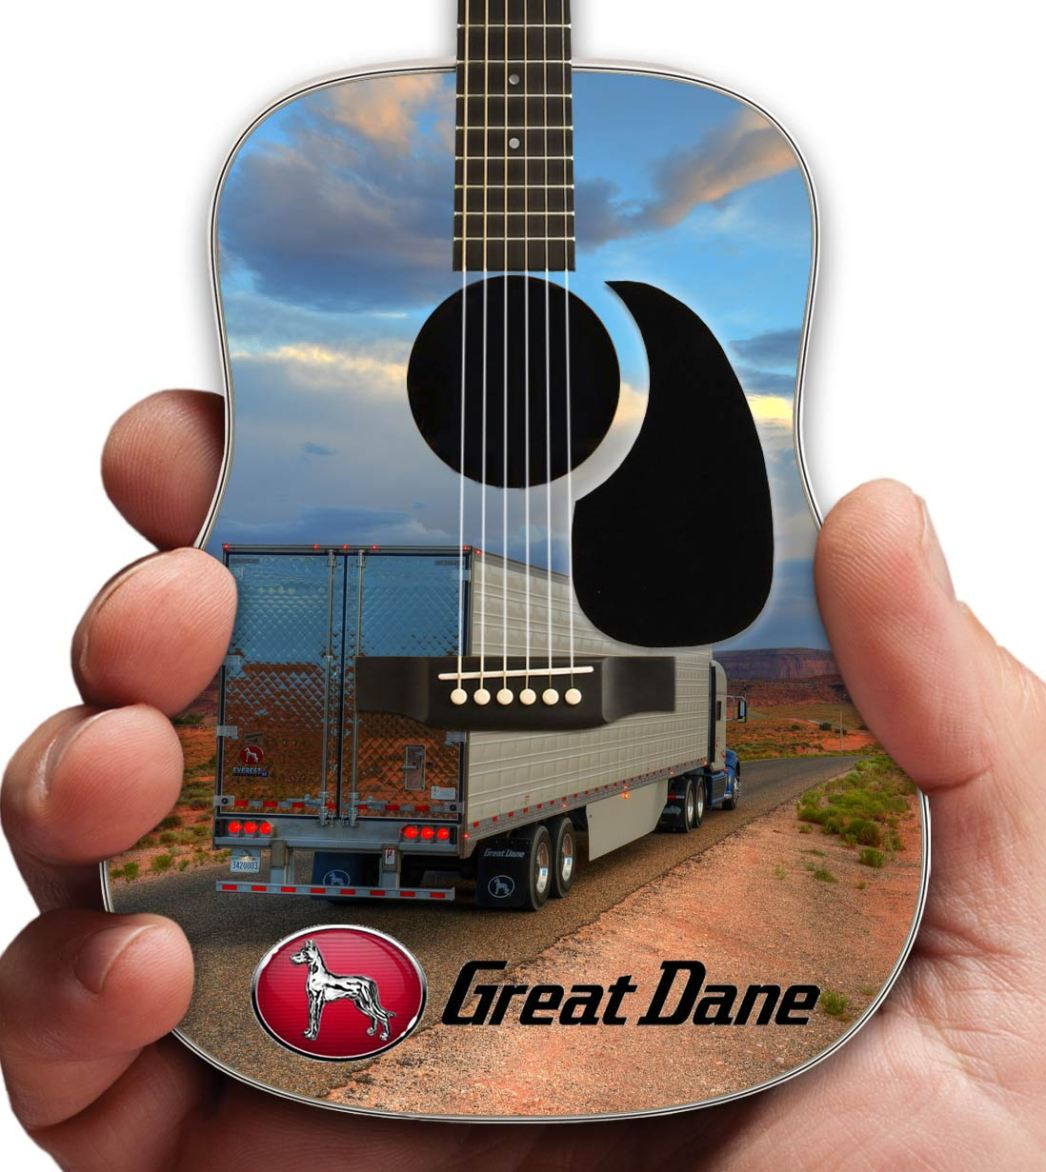 Promo Acoustic Mini Guitar for Great Dane